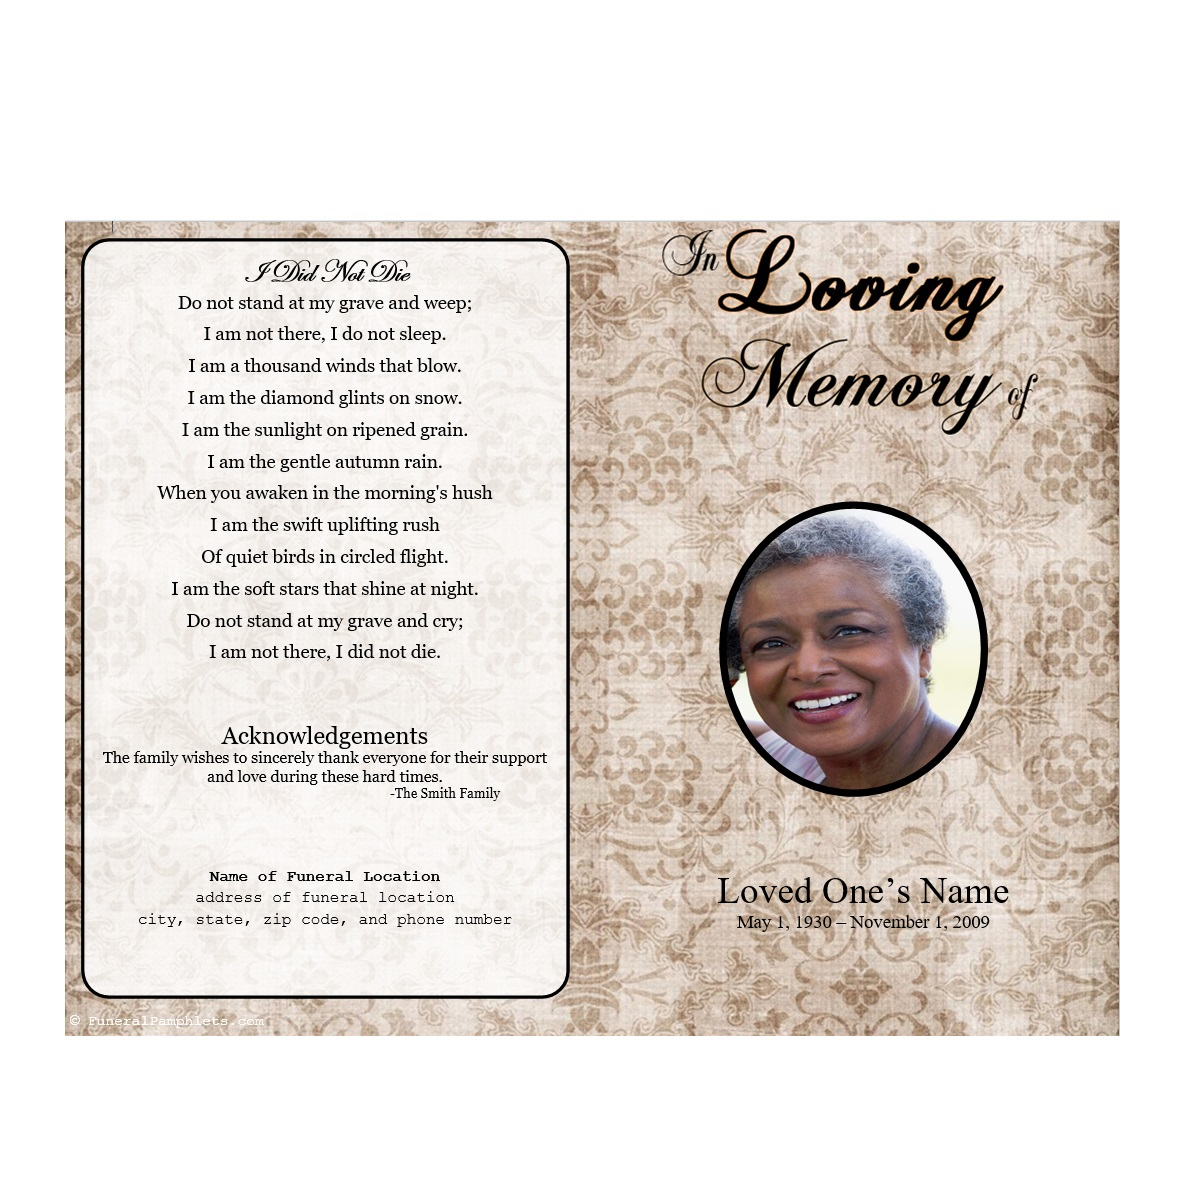 Floral Designs Single Fold Memorial Program - Funeral Pamphlets